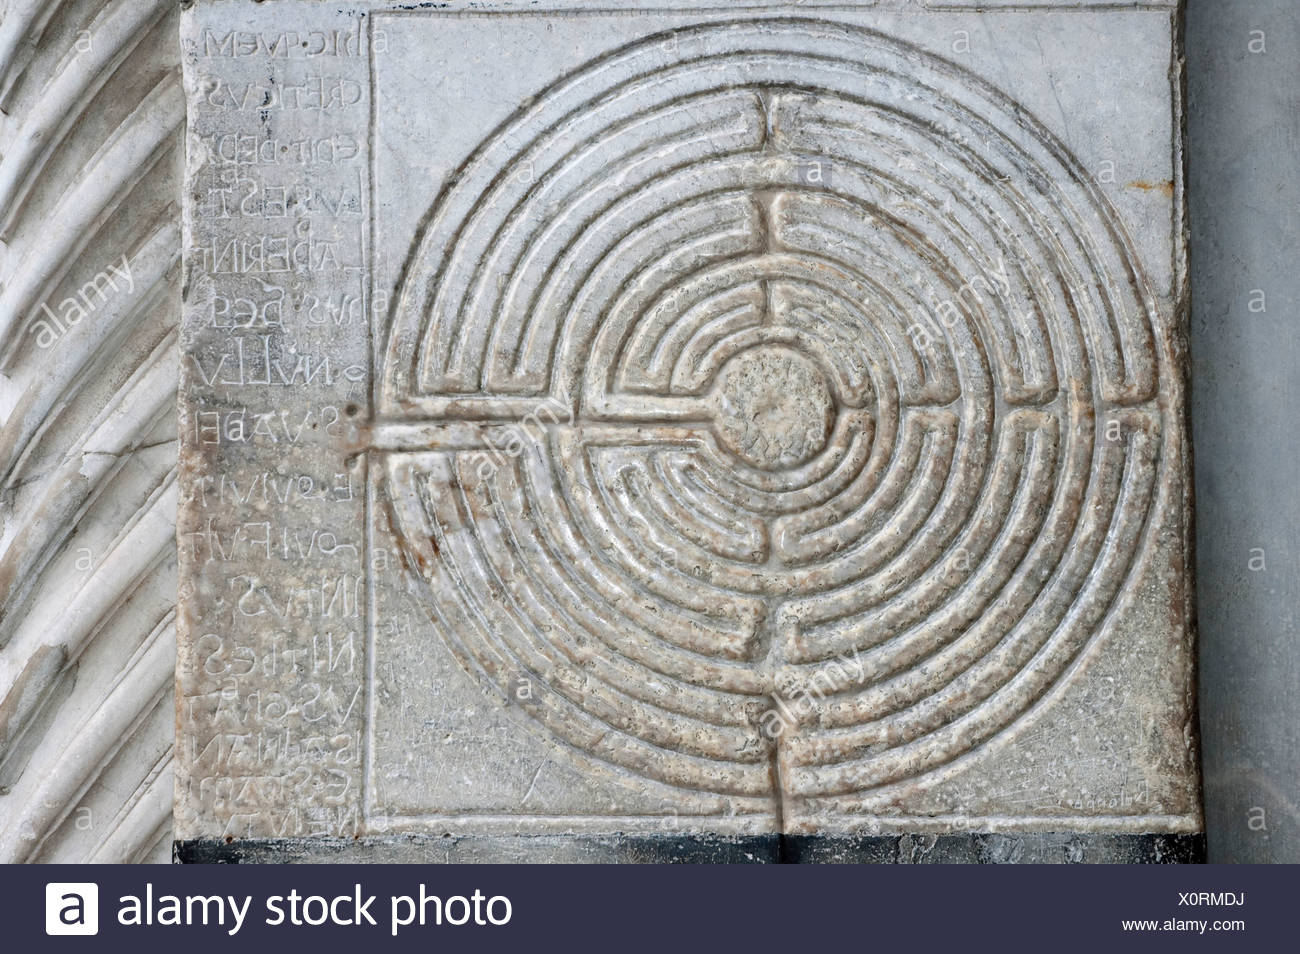 One of the oldest labyrinths, cathedral of San Martino, Lucca, Tuscany, Italy, Europe - Stock Image